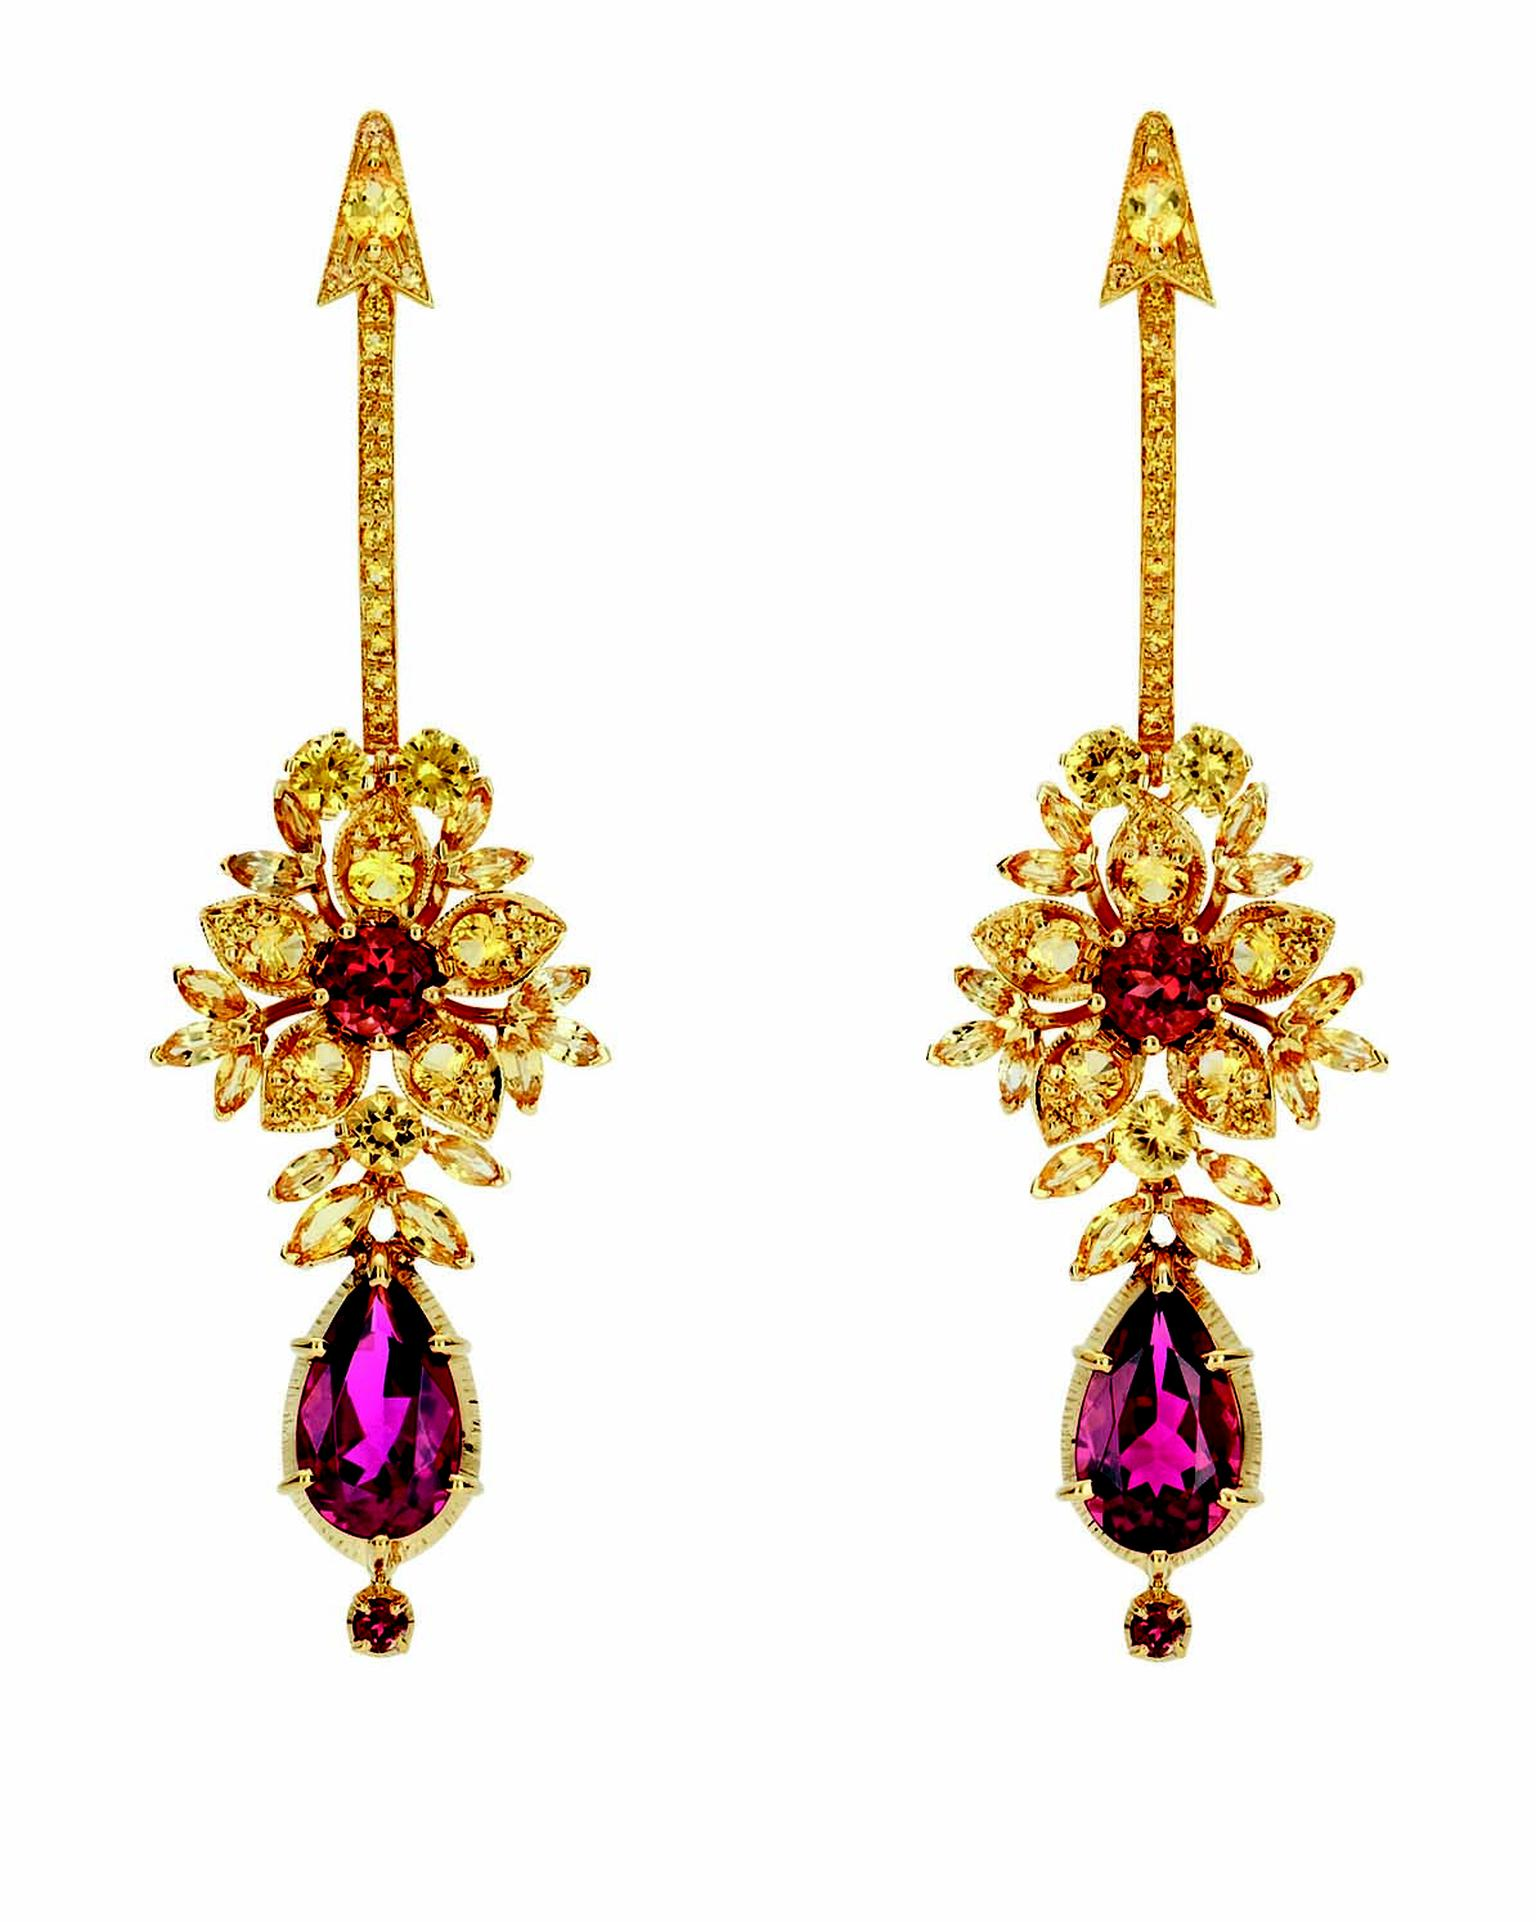 Gucci Hortus Deliciarum Heart & Arrow earrings